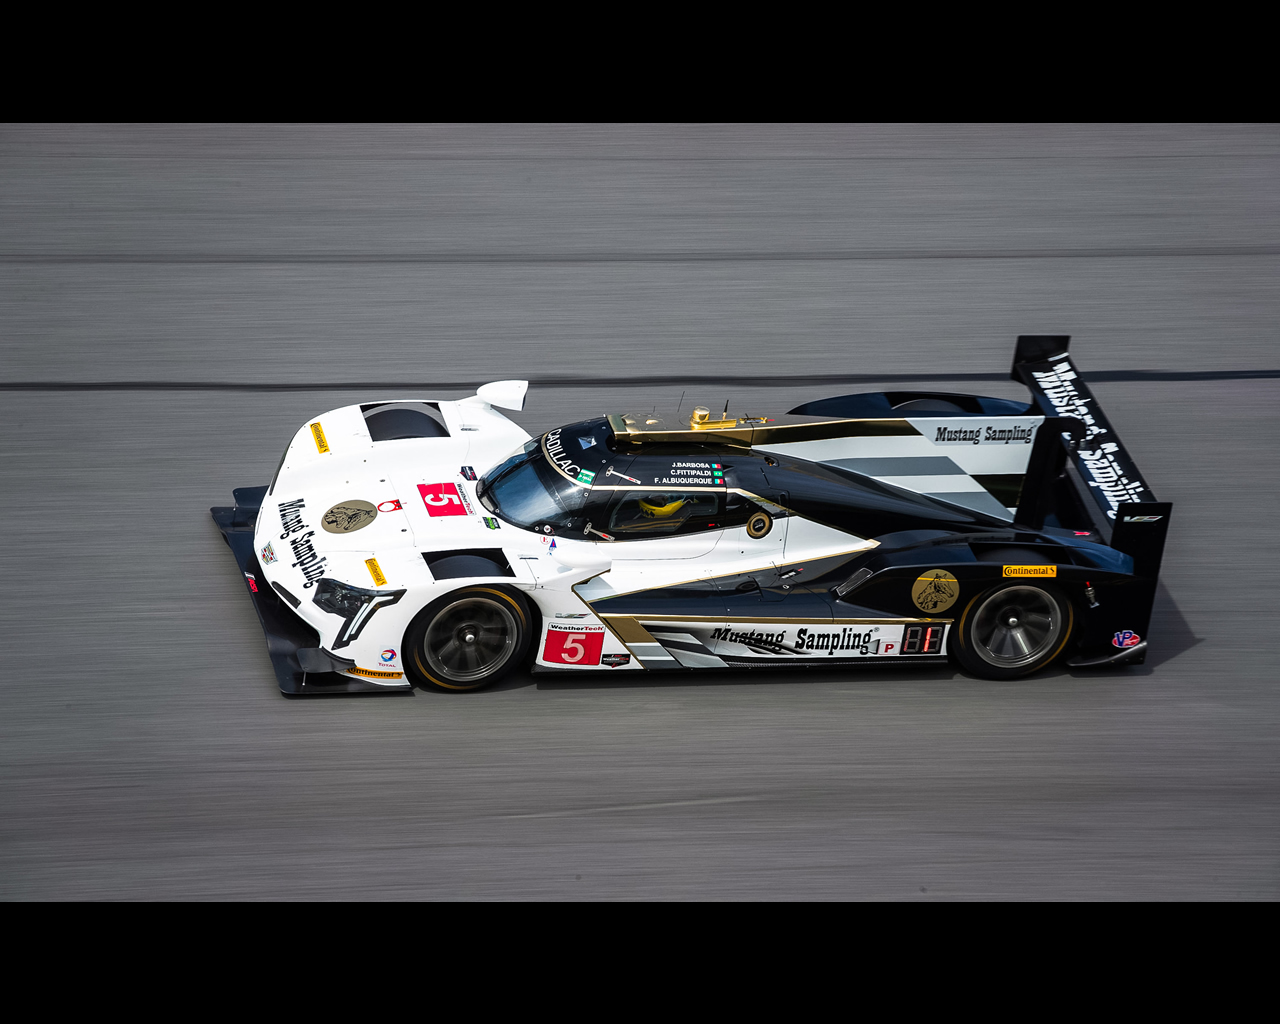 Cadillac DPi-V.R. win 1st 2nd 6th at 2017 IMSA Daytona 24 ...